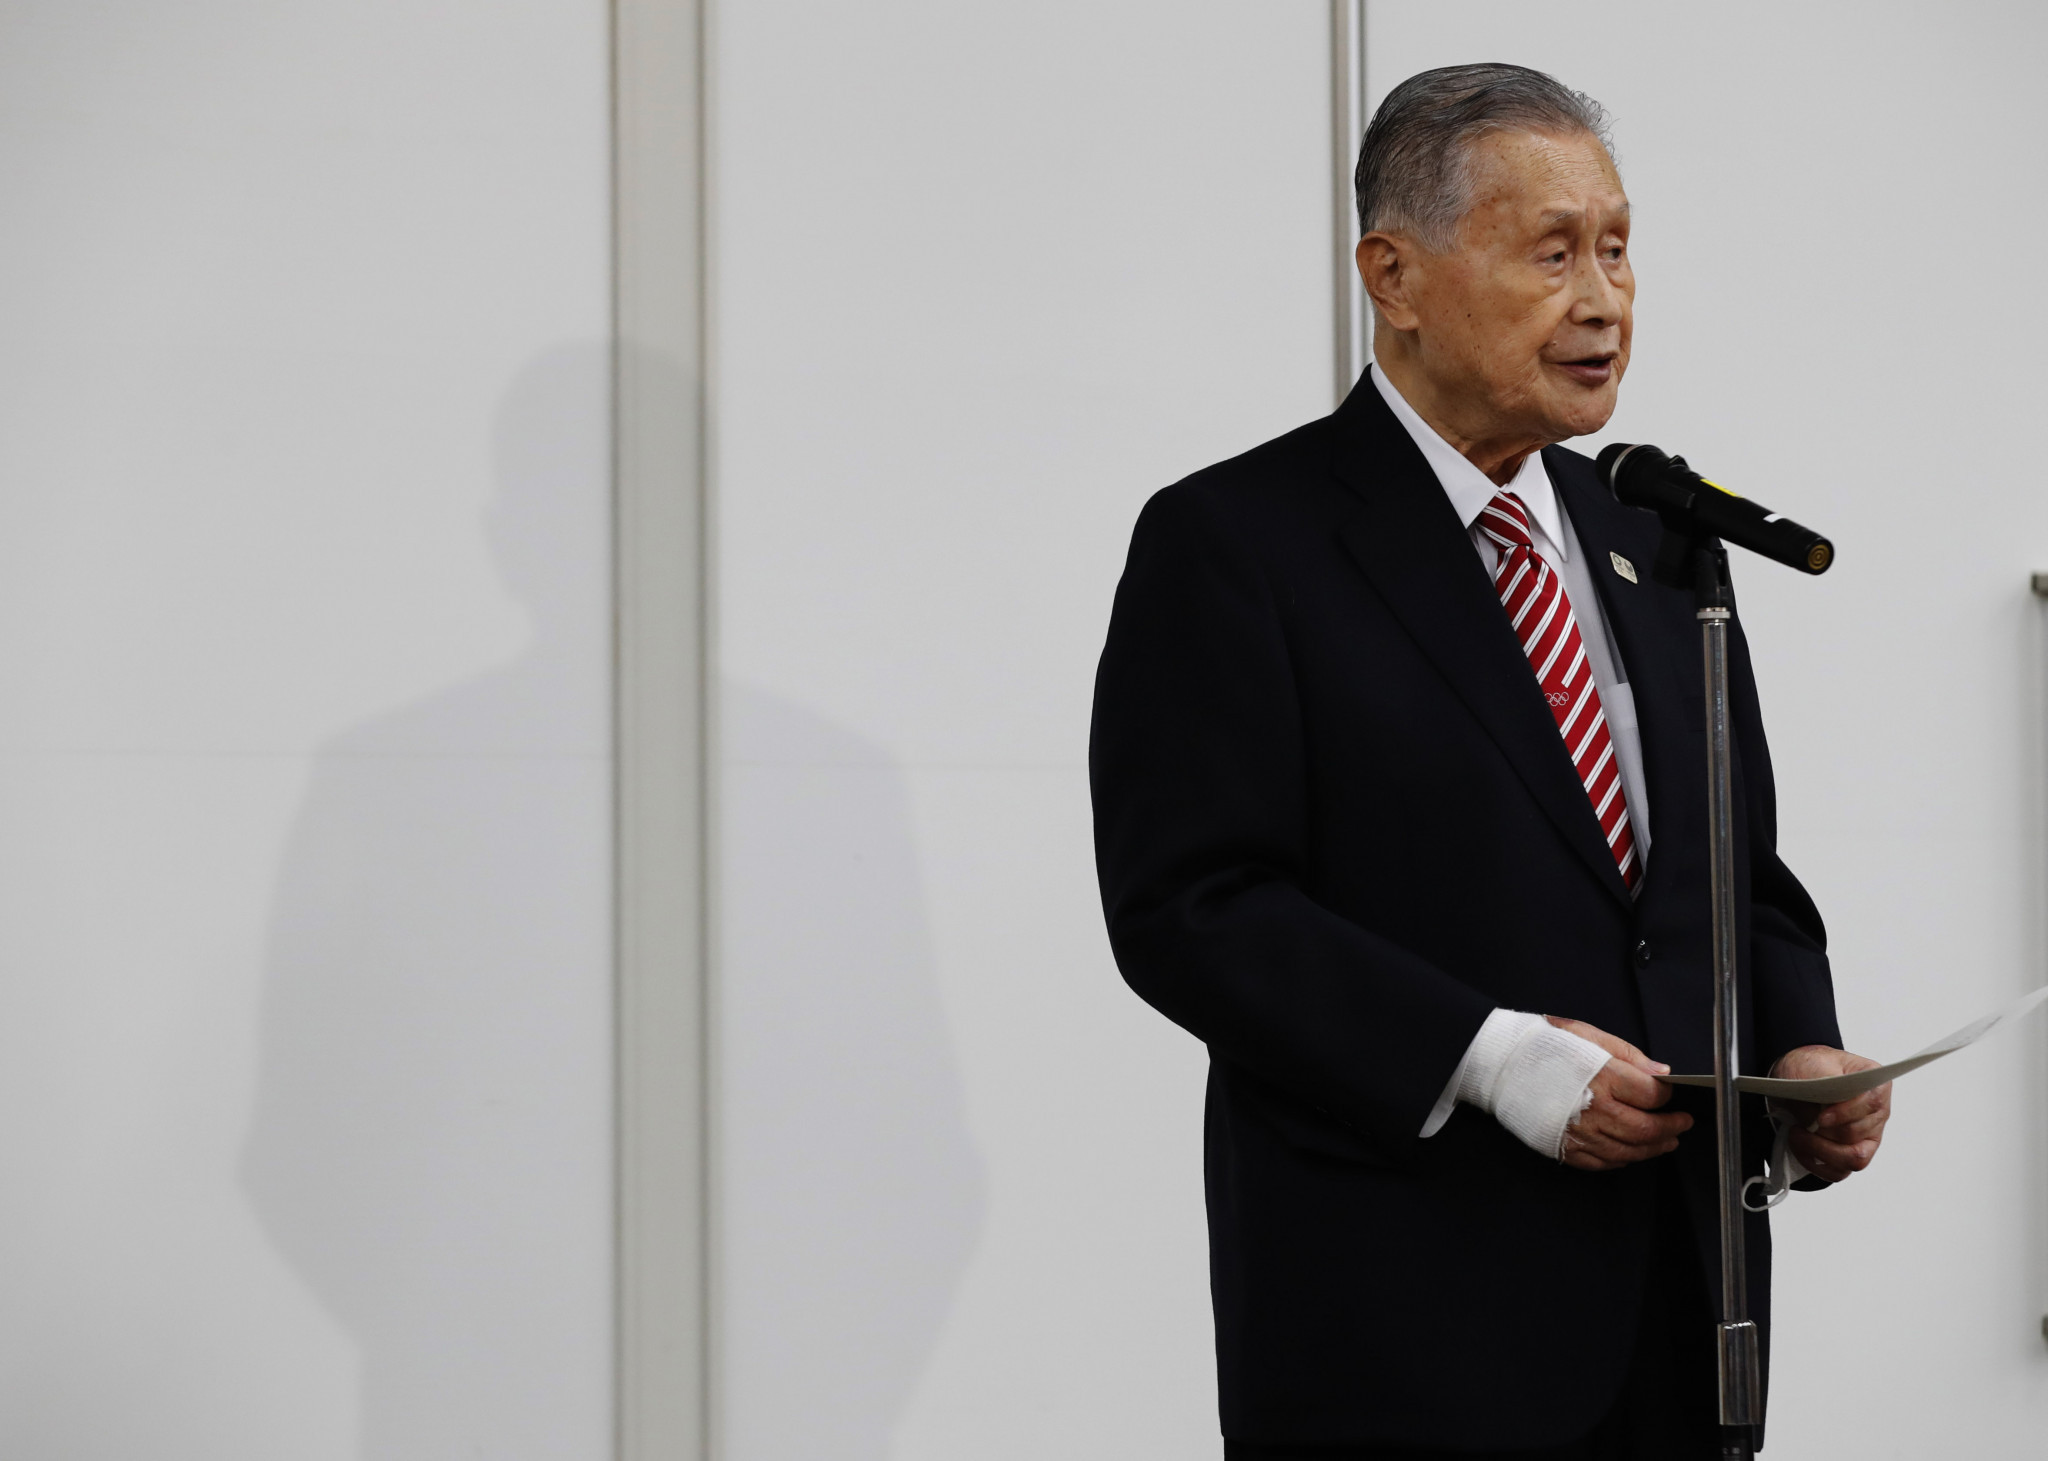 More than 110,000 sign petition seeking action over Tokyo 2020 President Mori sexism row